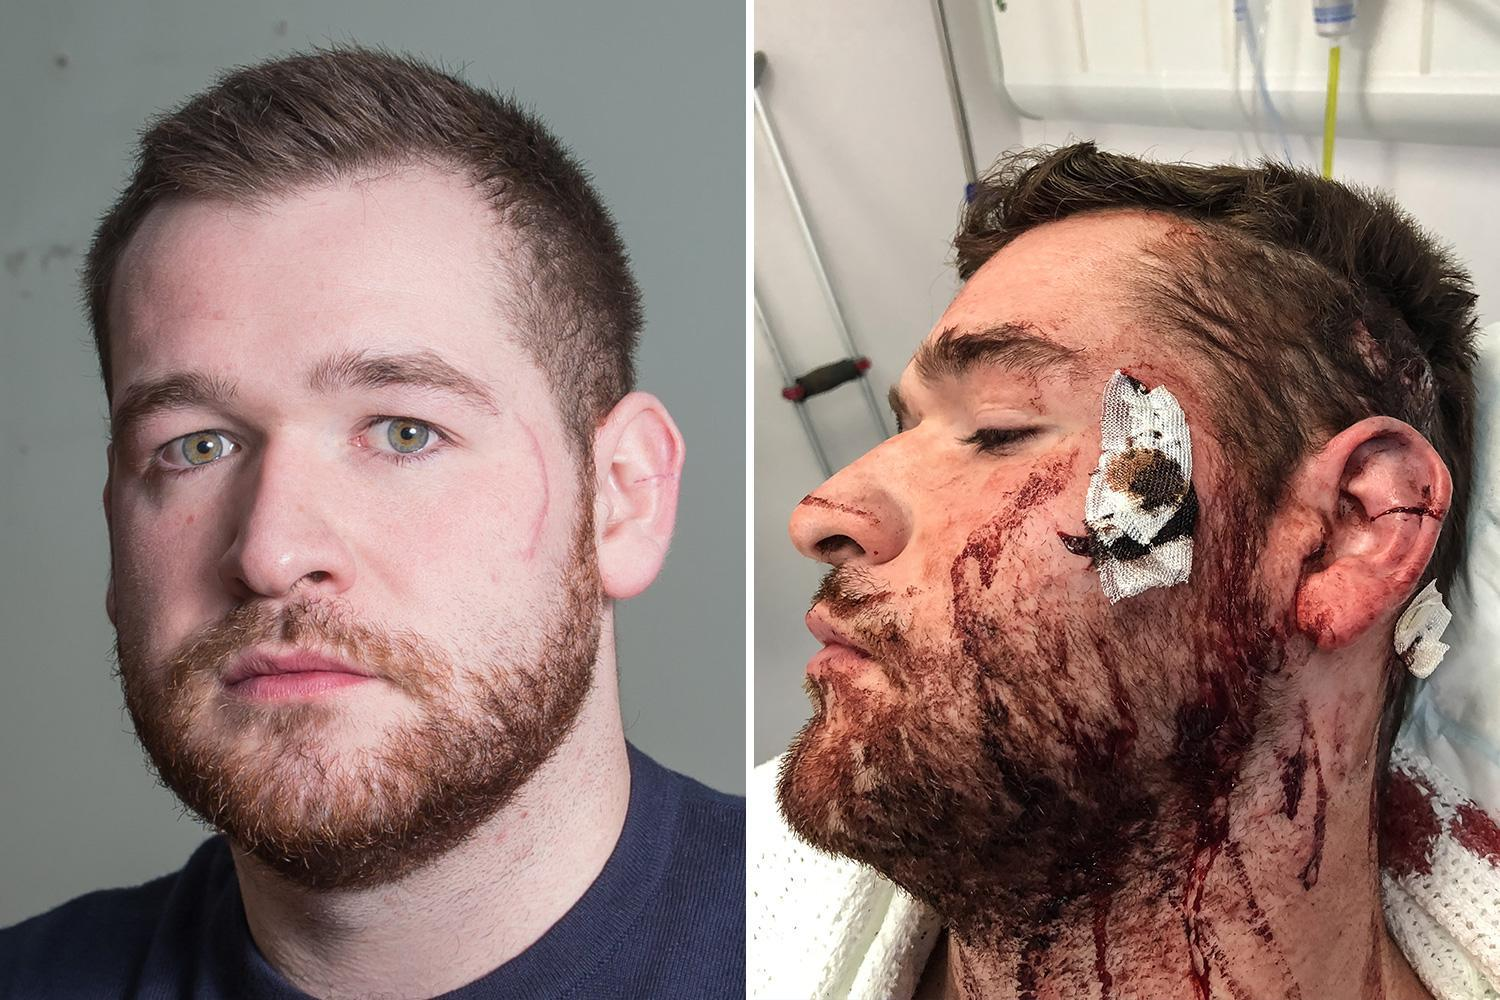 'Cowardly' roofer stabbed lawyer in face with broken glass in unprovoked bar attack leaving him with horrific injuries